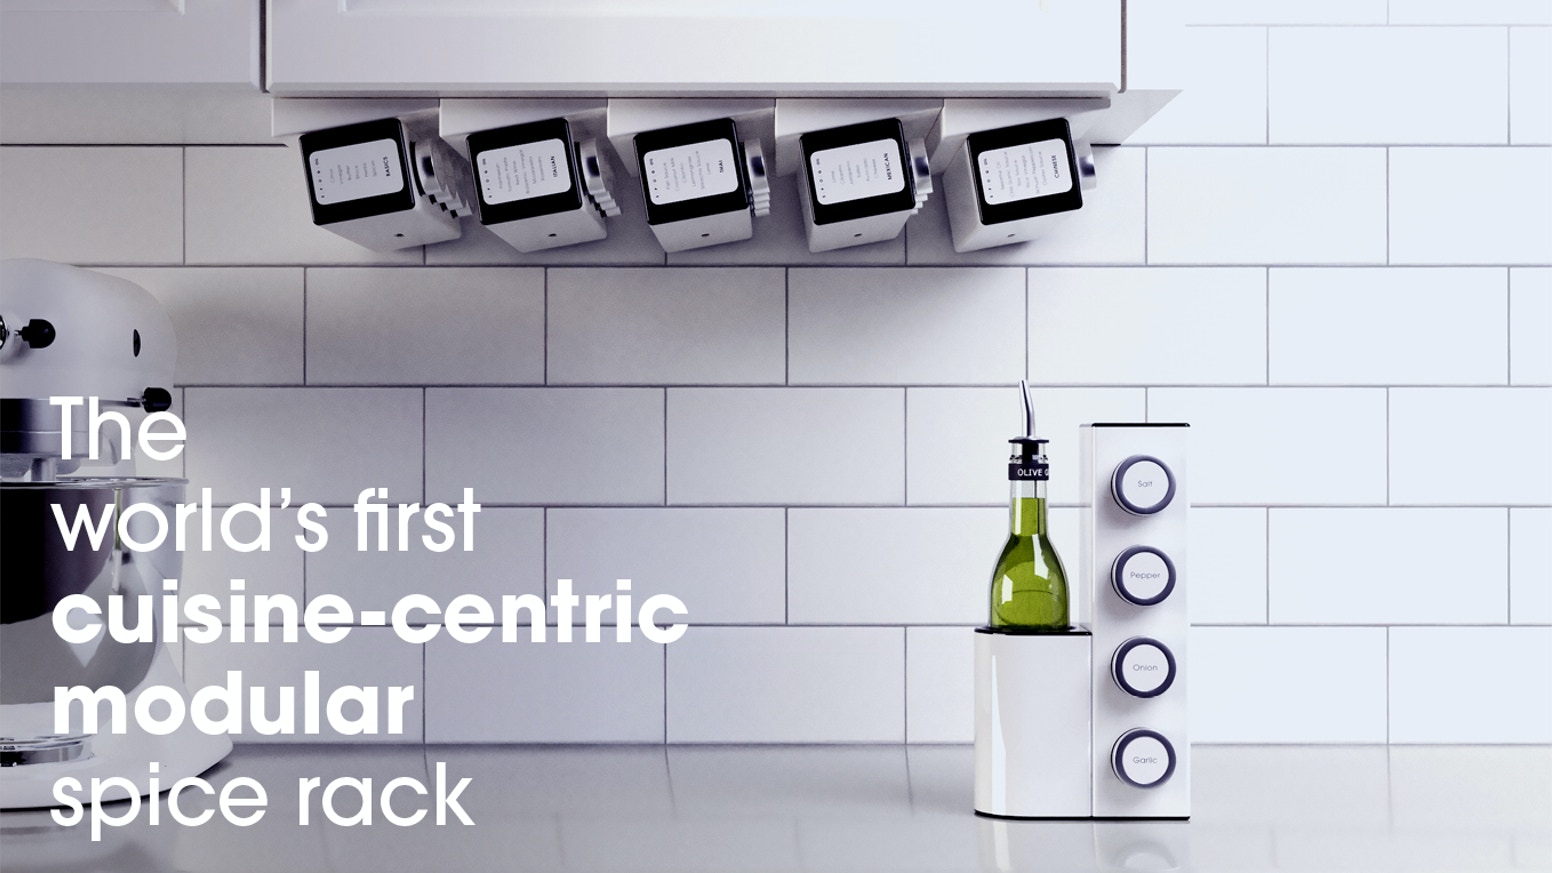 The spice rack reinvented for faster, more inspired cooking